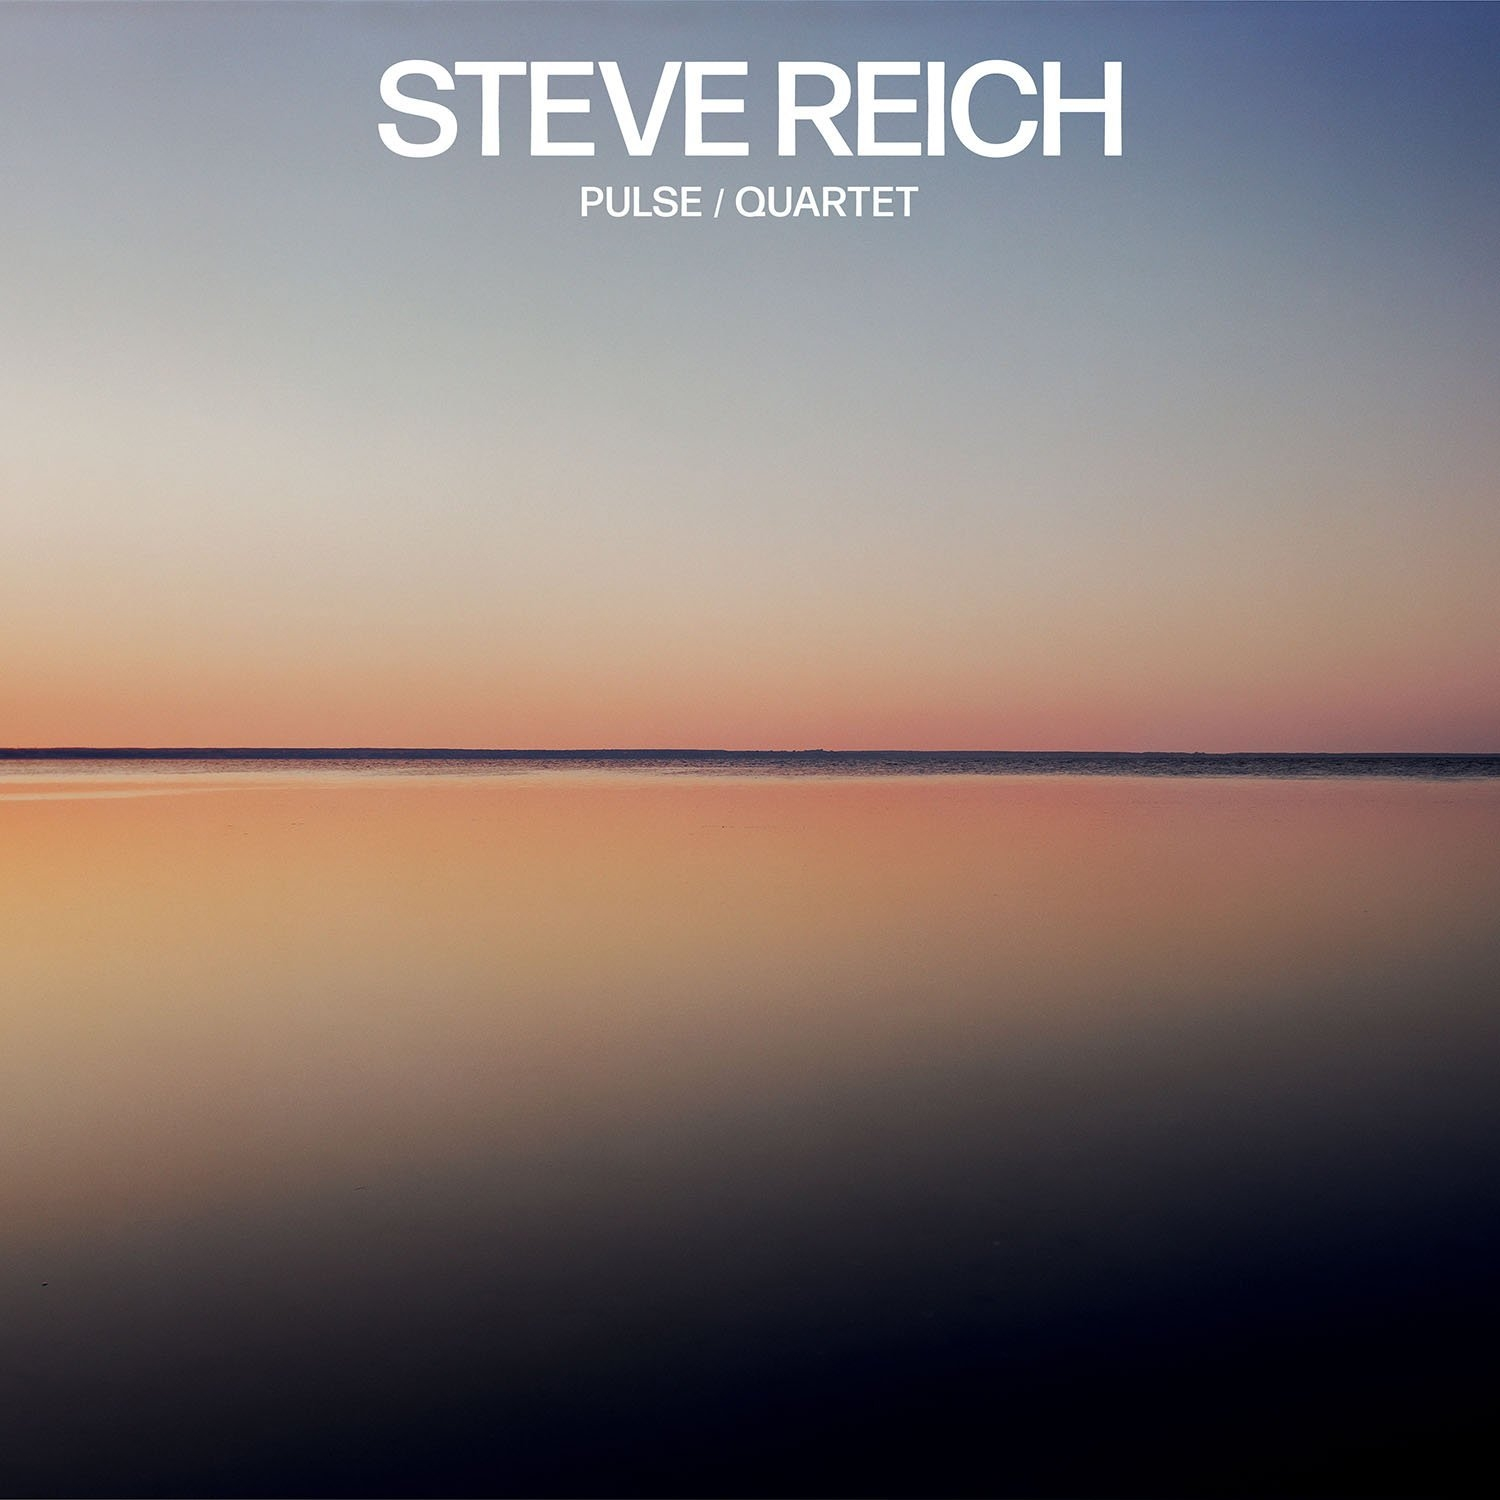 crossover 03 18 Steve Reich Pulse